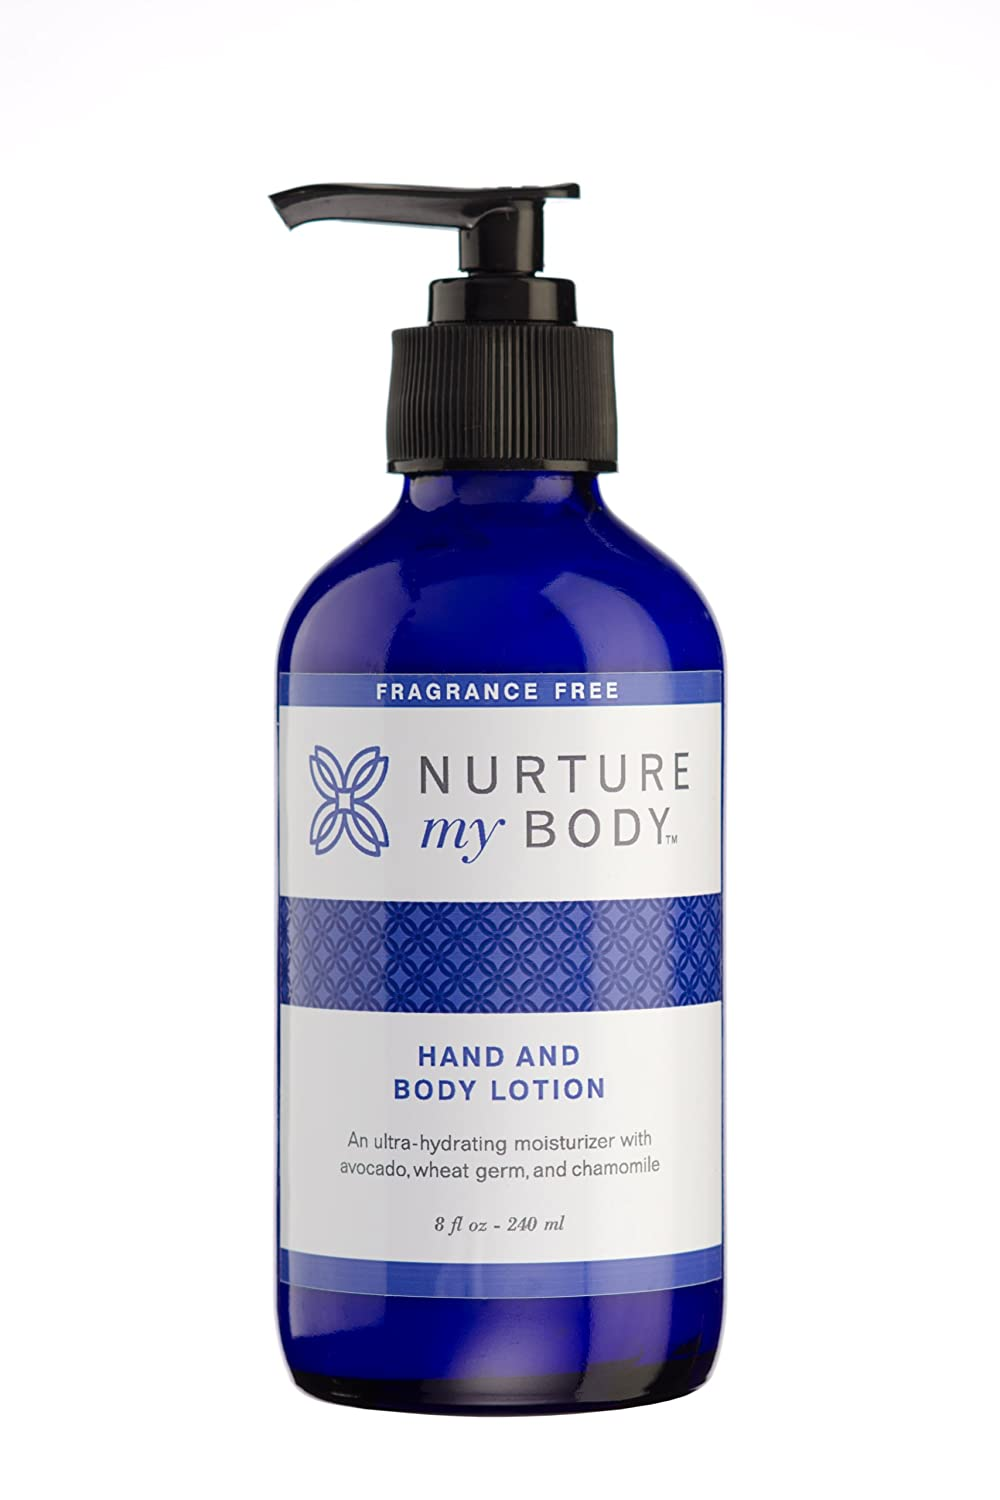 Nurture My Body All-Natural Hand & Body Lotion, Fragrance Free, 8 fl oz. - Certified Organic Ingredients